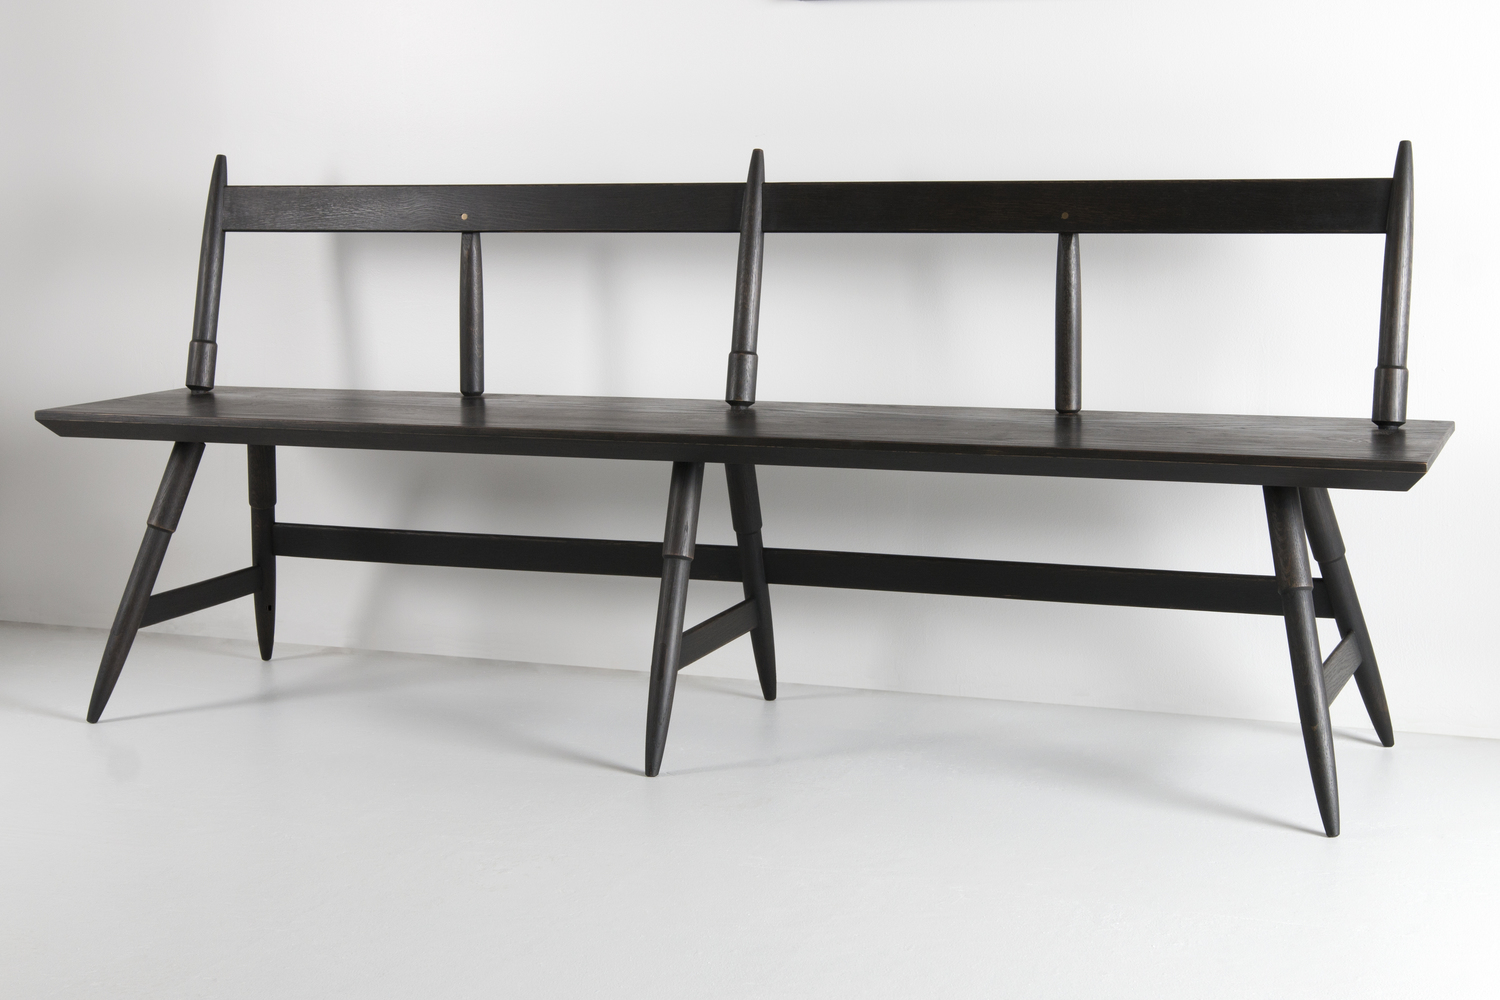 Rockport bench seasoned black at angle studio dunn